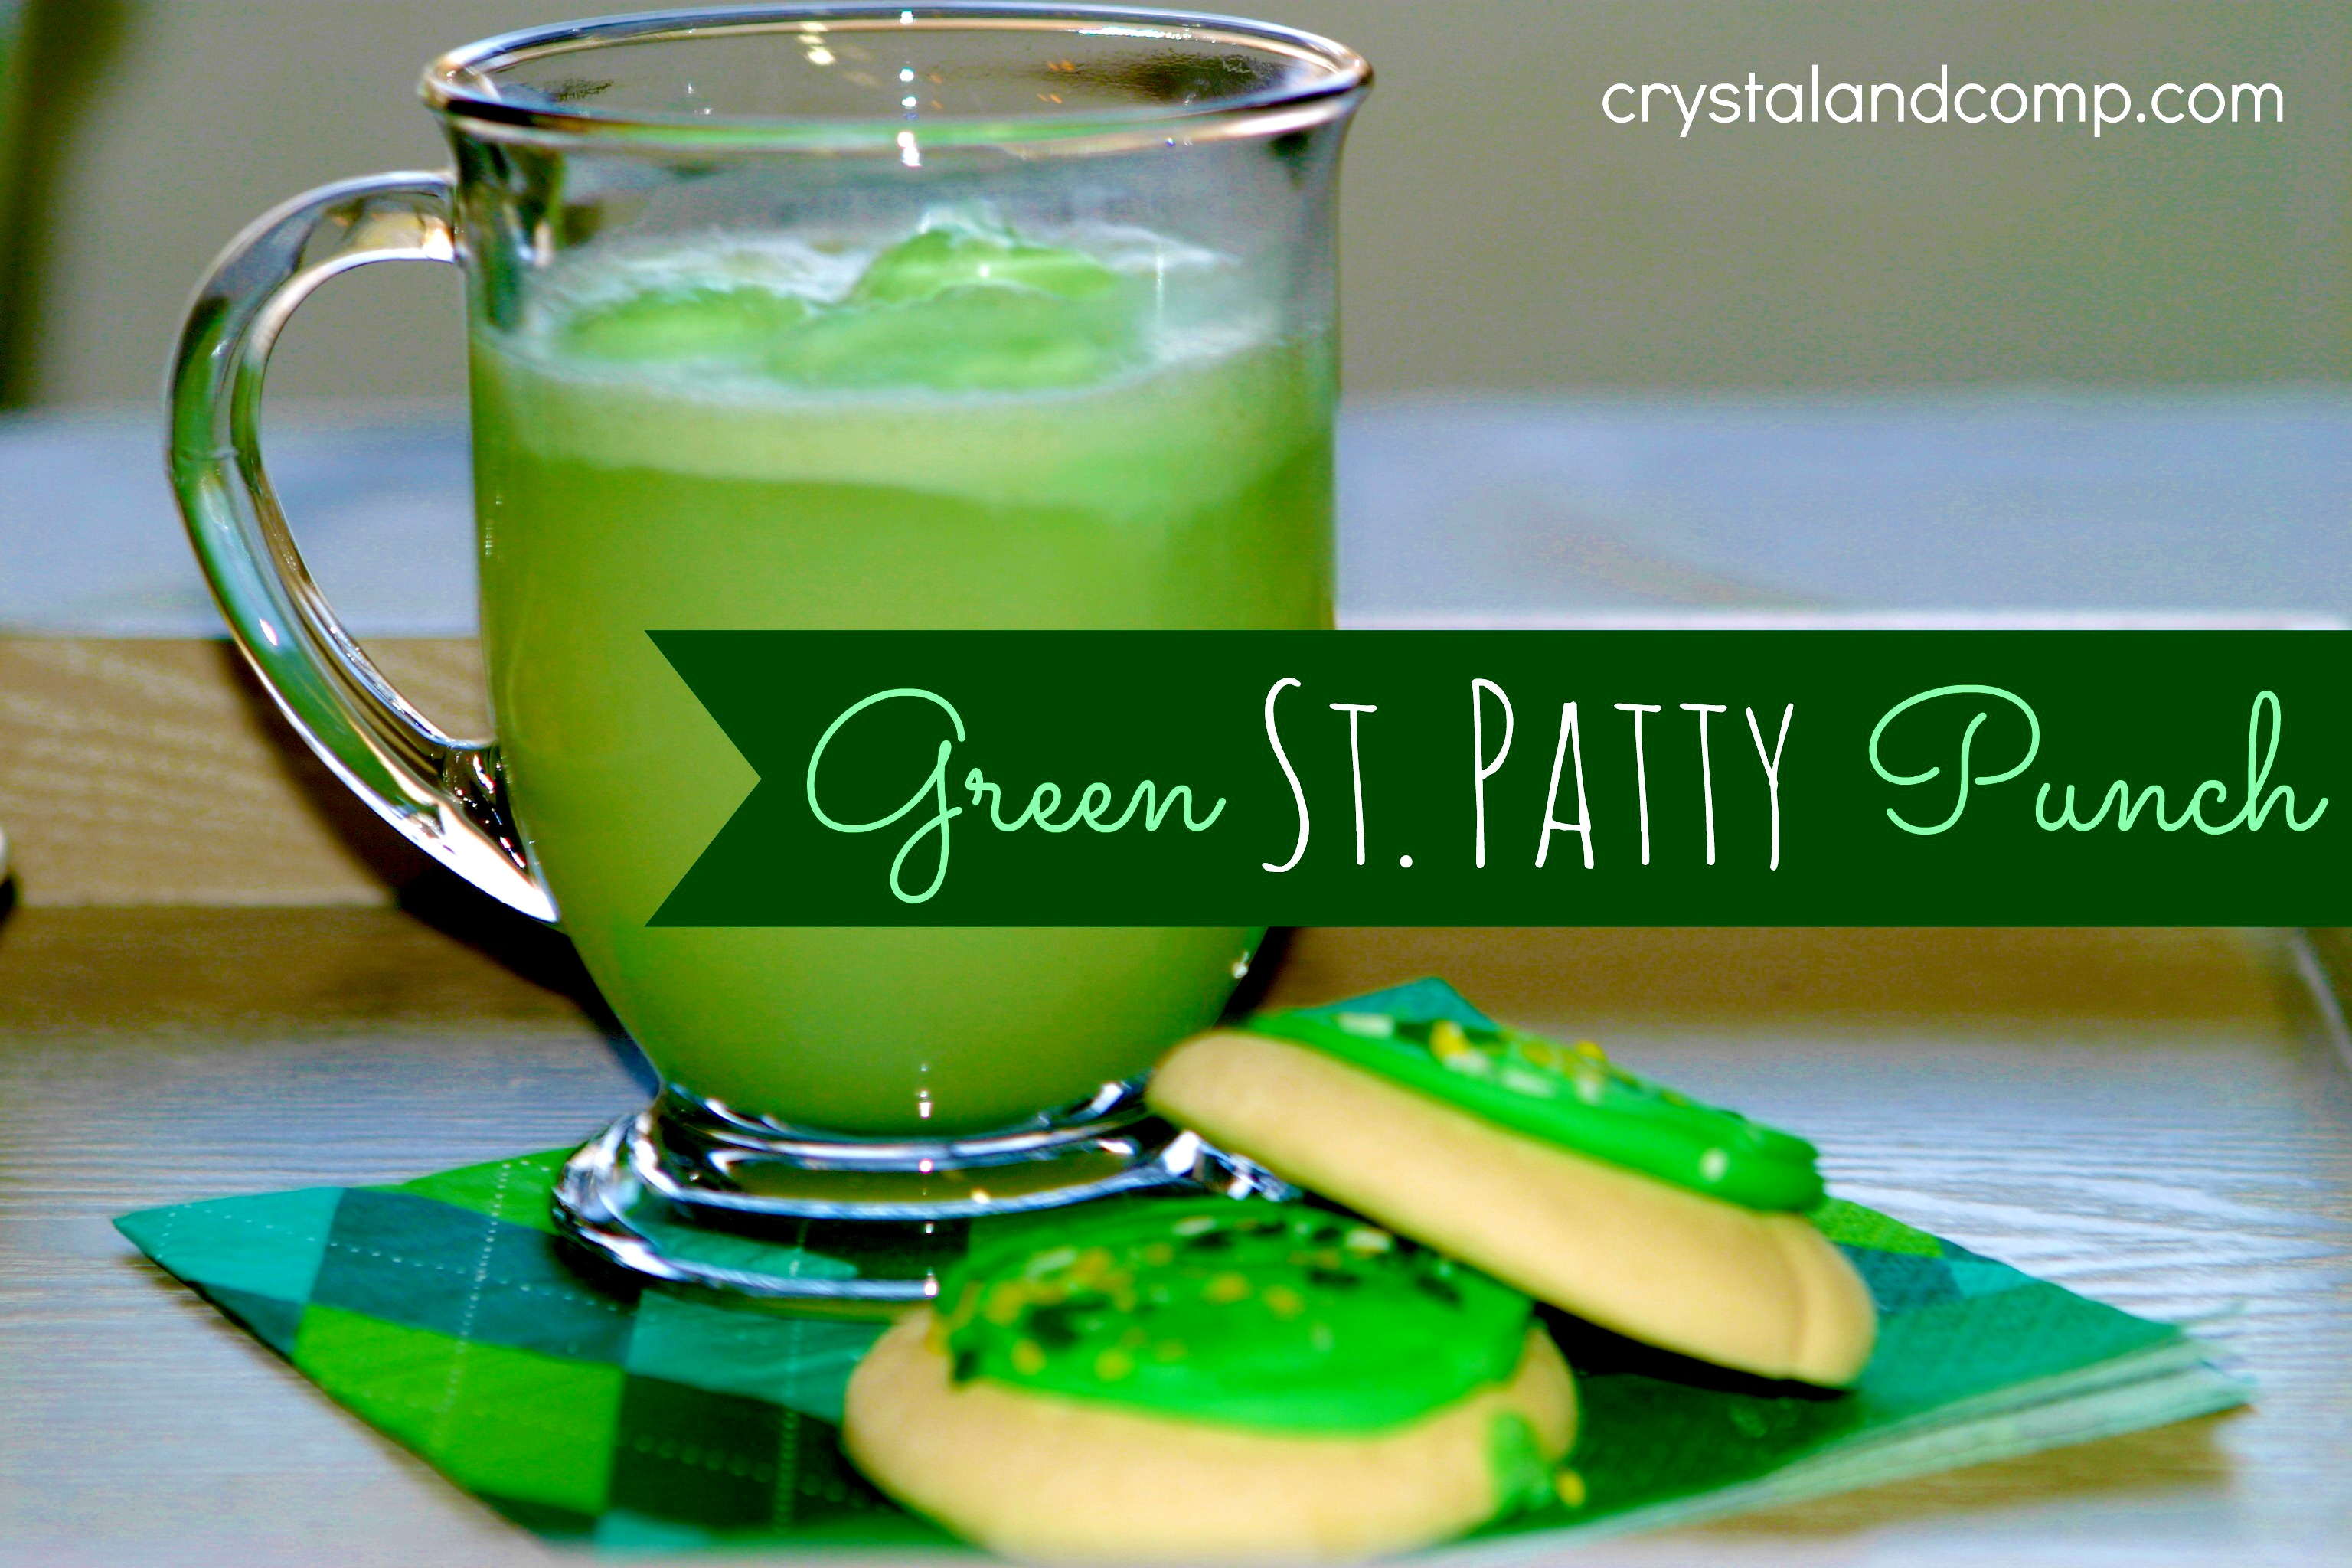 Crafts for st patricks day - St Patrick Day Crafts How To Make Green Punch